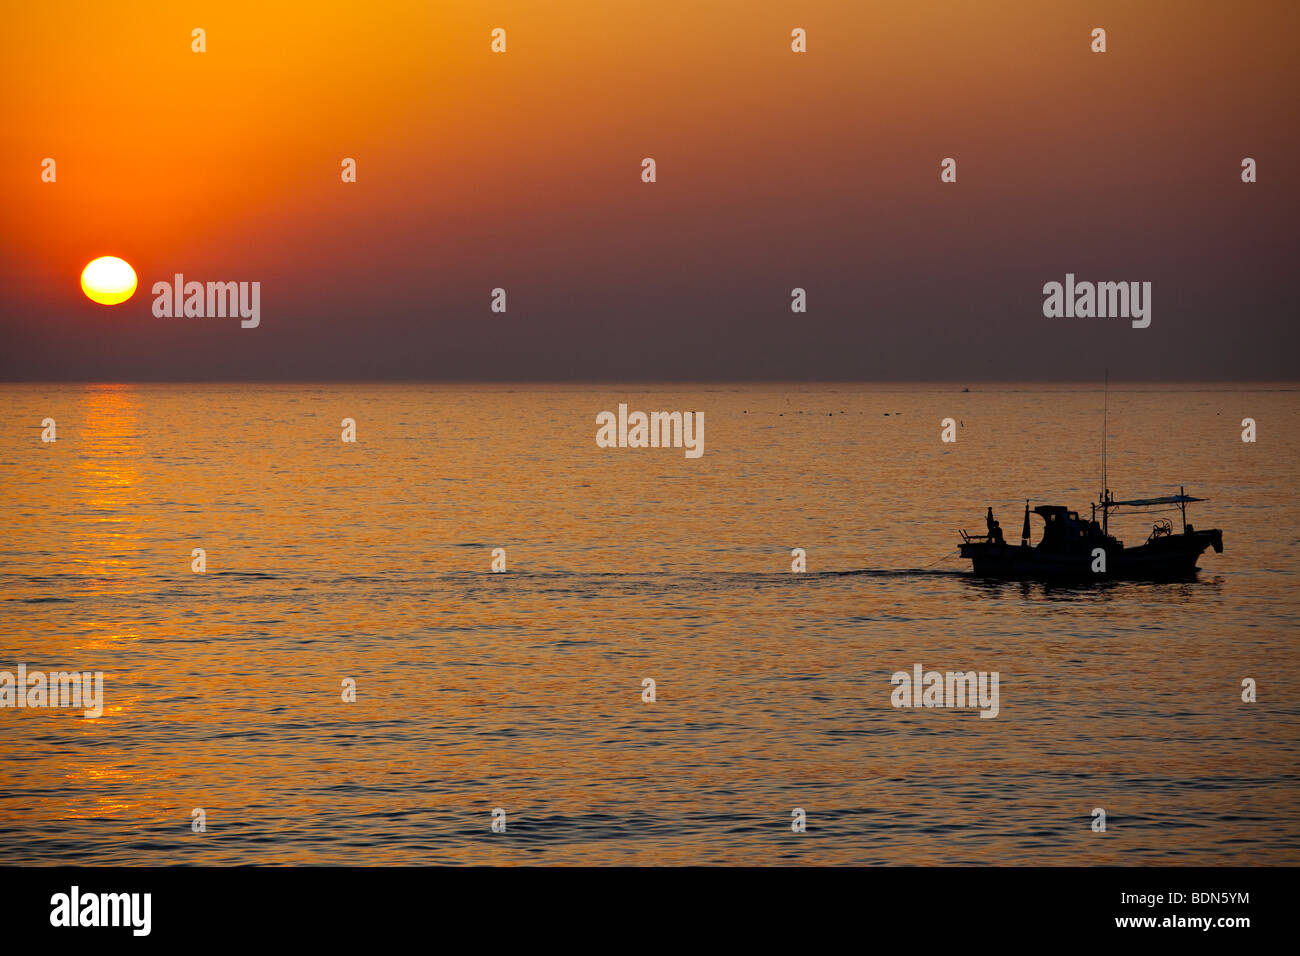 Fishing Boat and Sunrise on the East Sea in Sokcho in Gangwondo Province South Korea - Stock Image